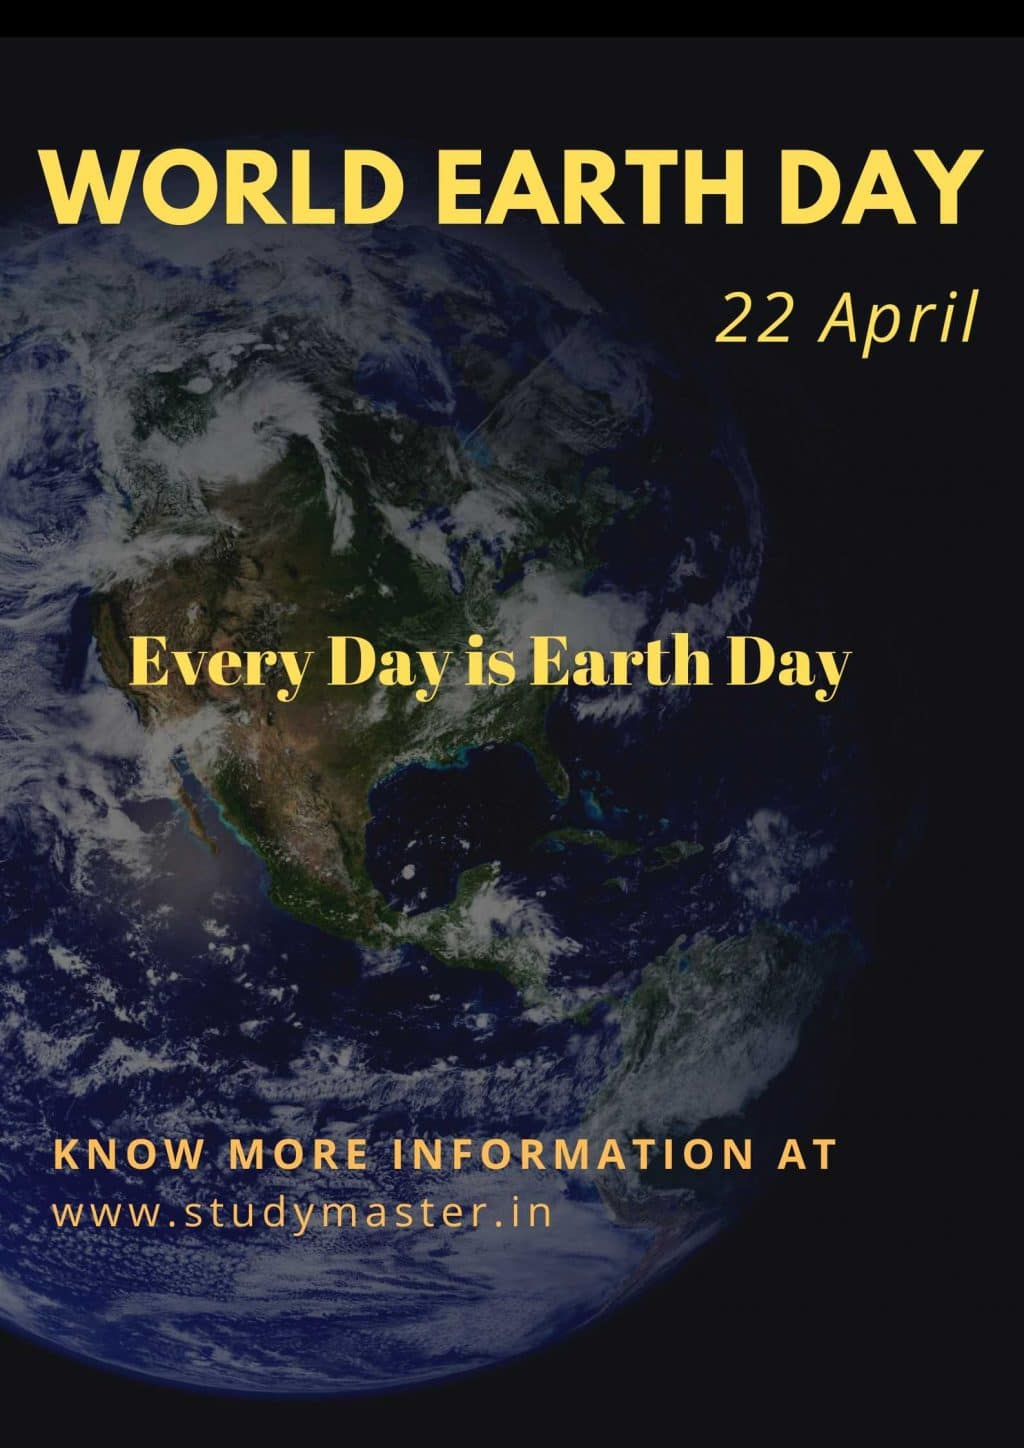 poster on save earth with slogan